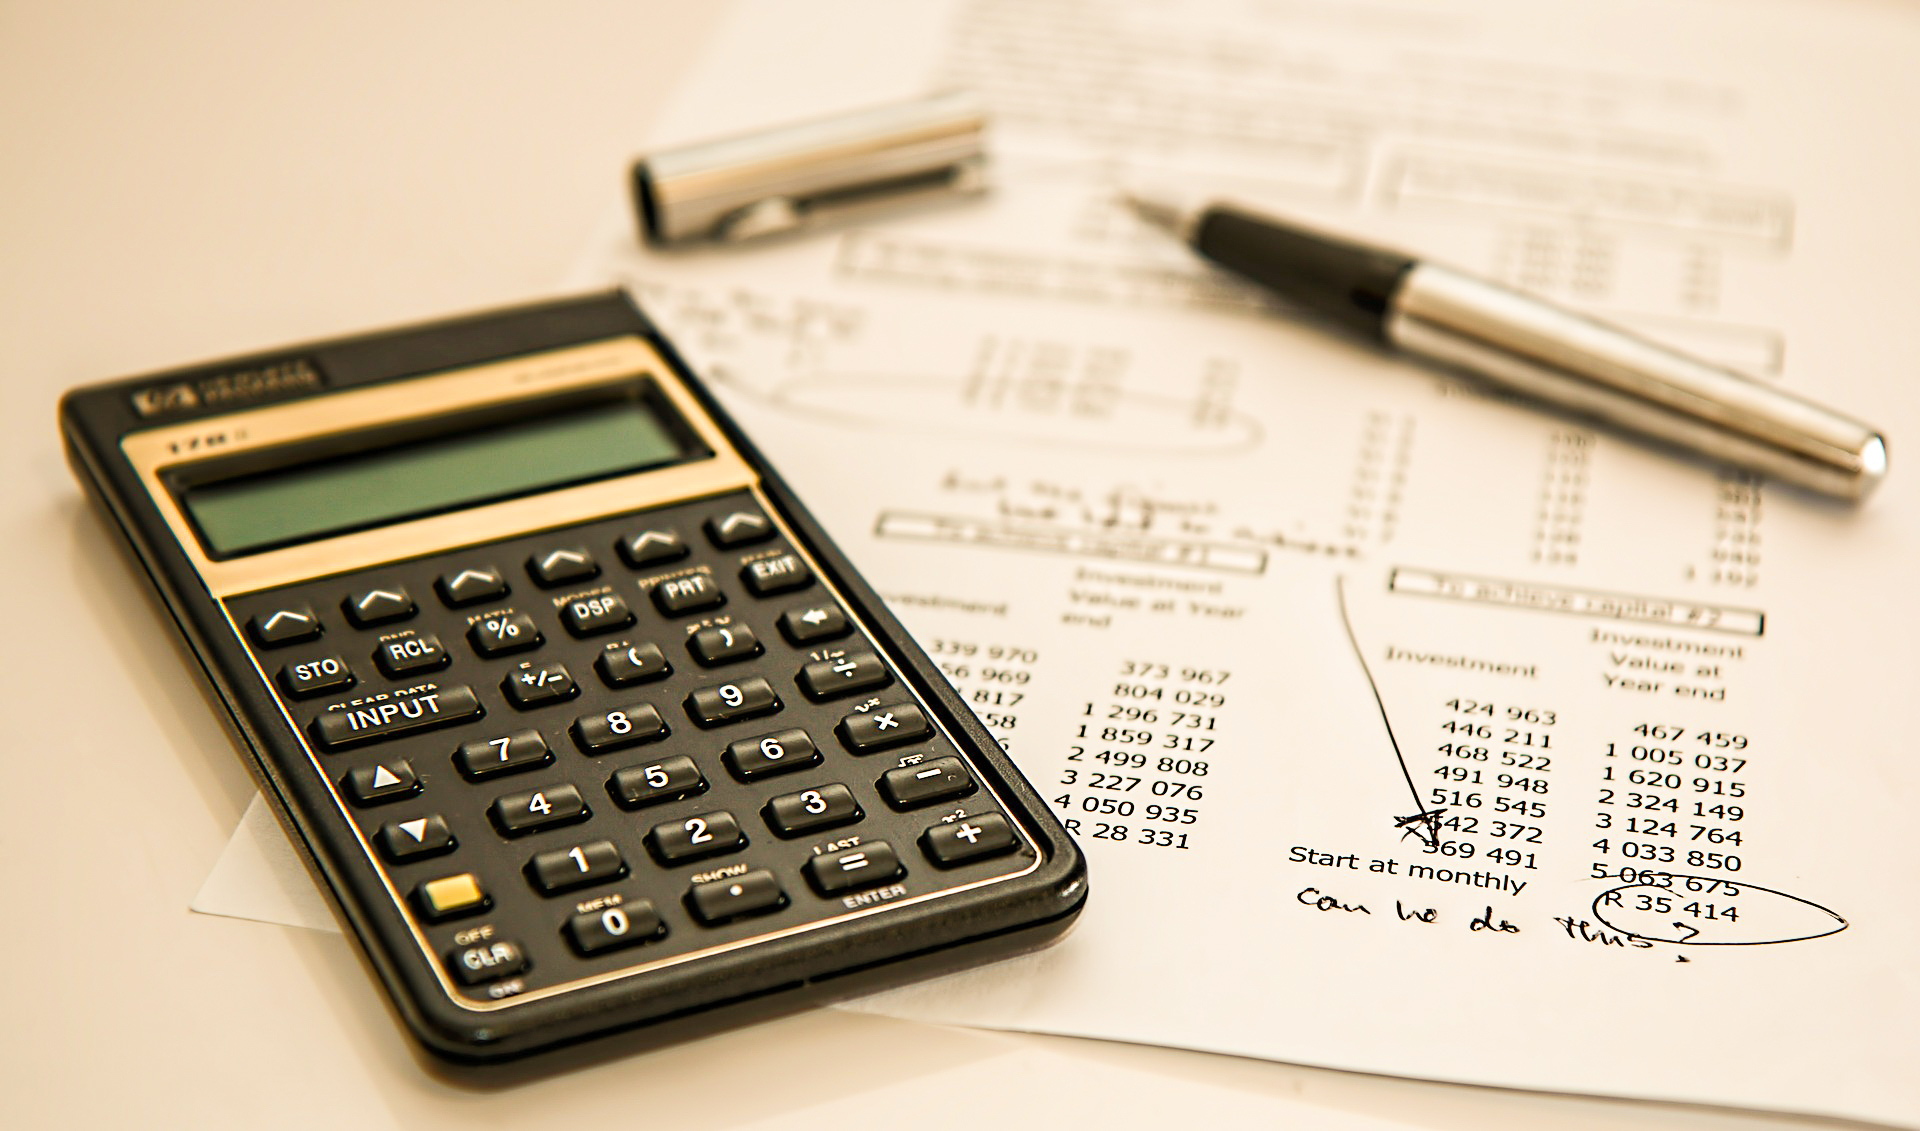 Top 5 CPA Accounting Schools in Manila, According to CPA